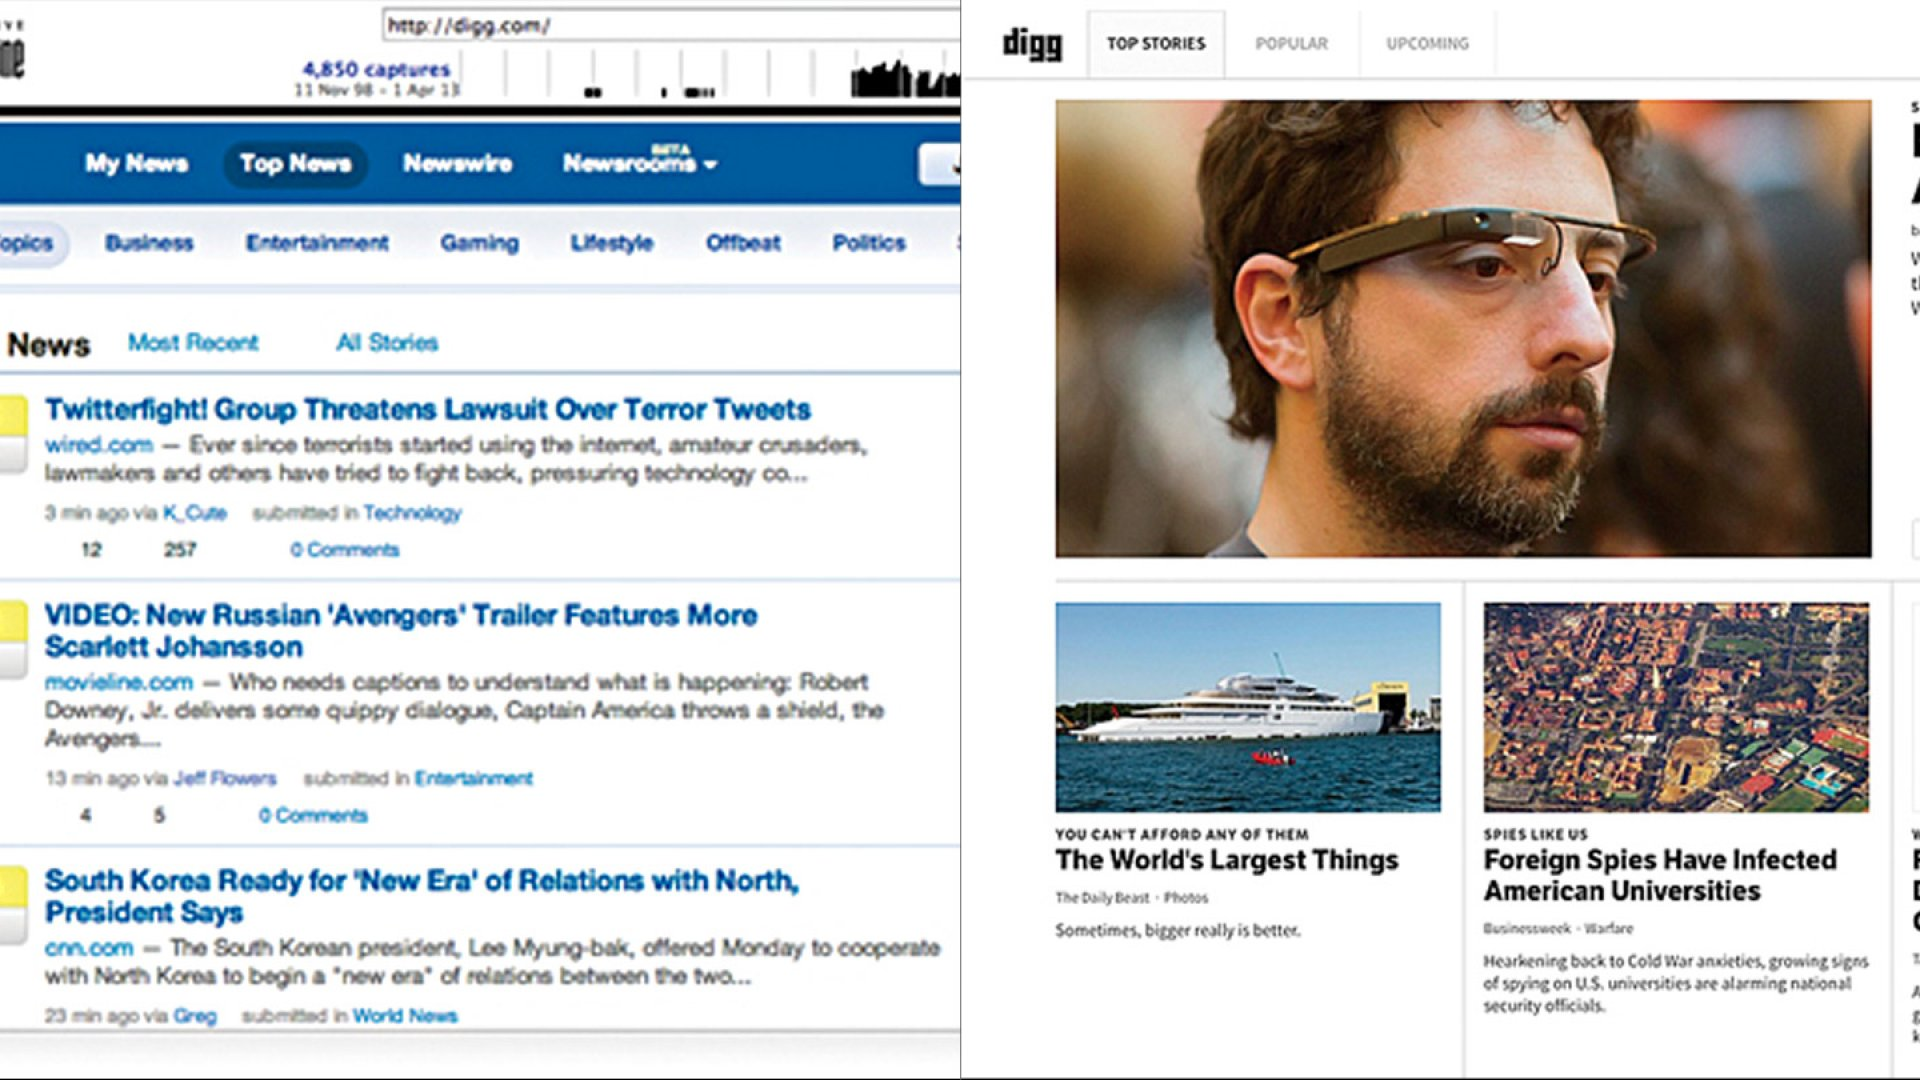 Digg: Before and After Its Redesign